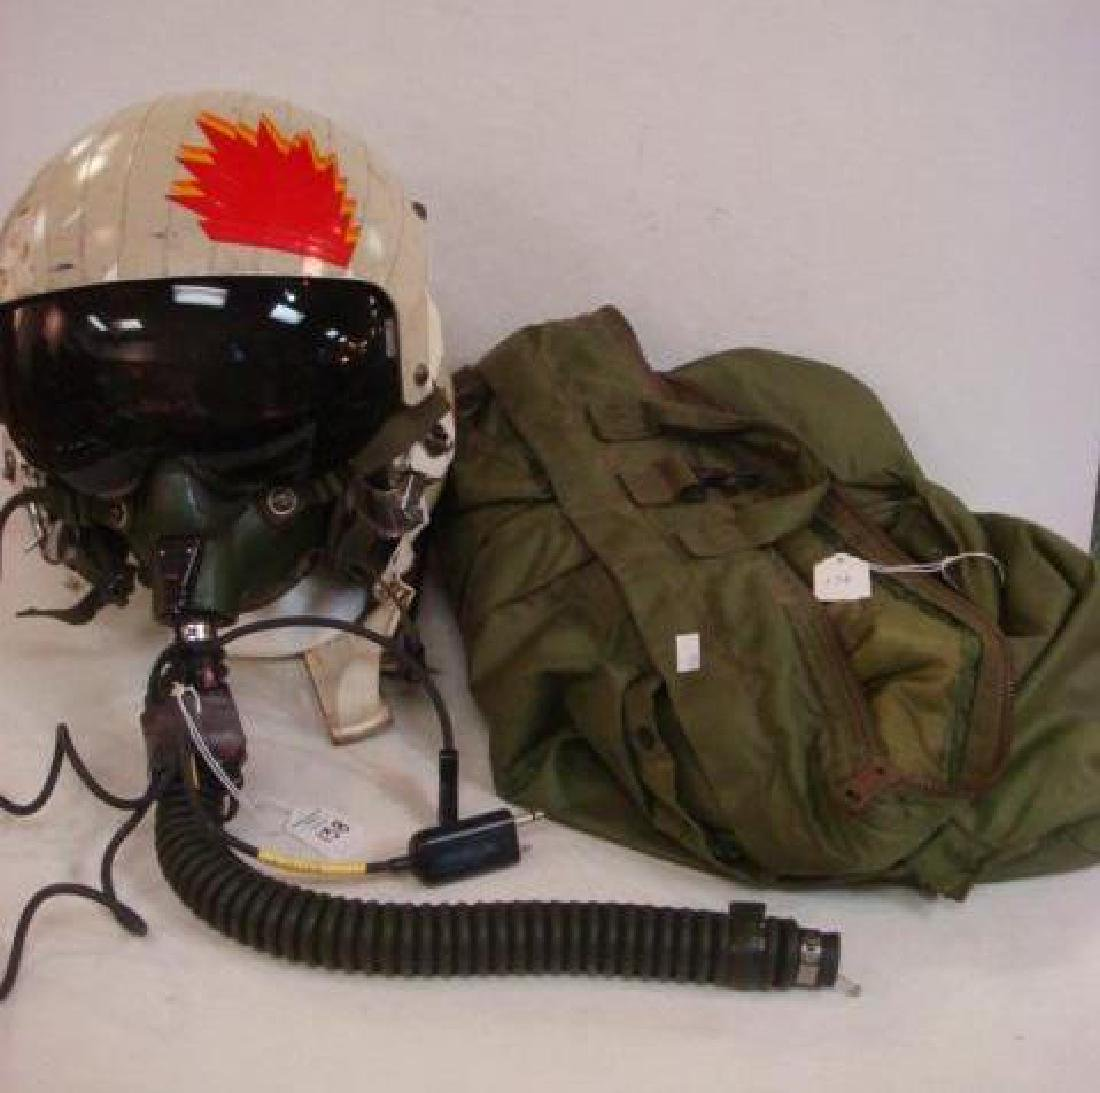 US NAVY Jet Pilot Helmet VA 128 and Helmet Bag: - 4